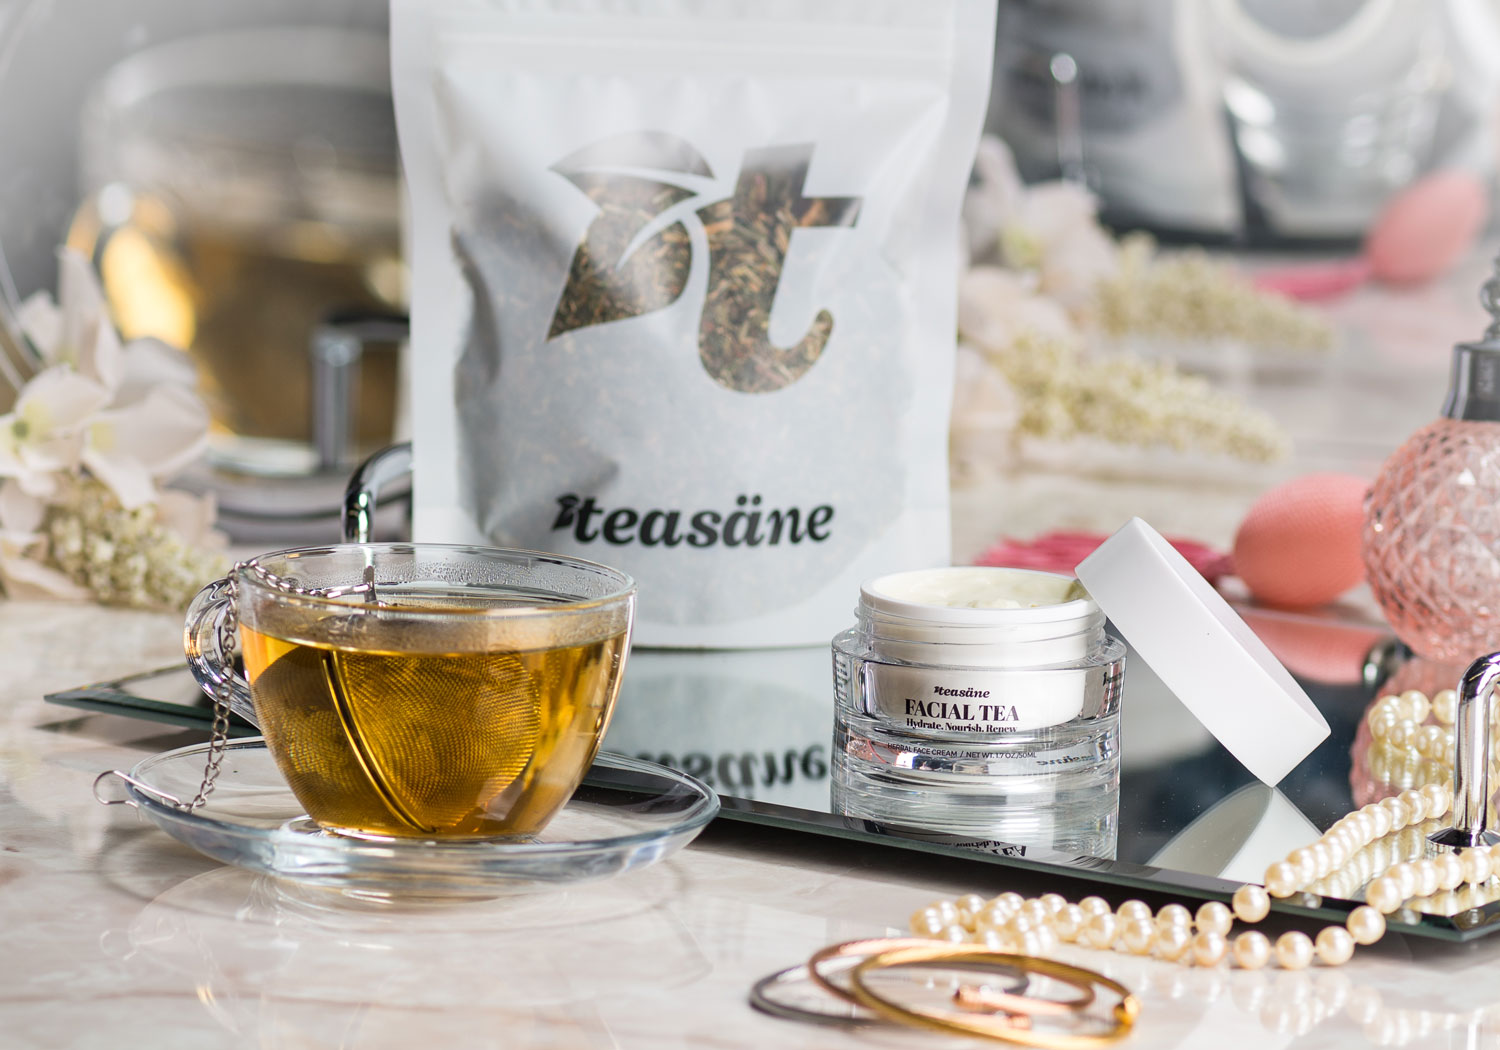 Facial tea herbal face cream from teasane tea brand